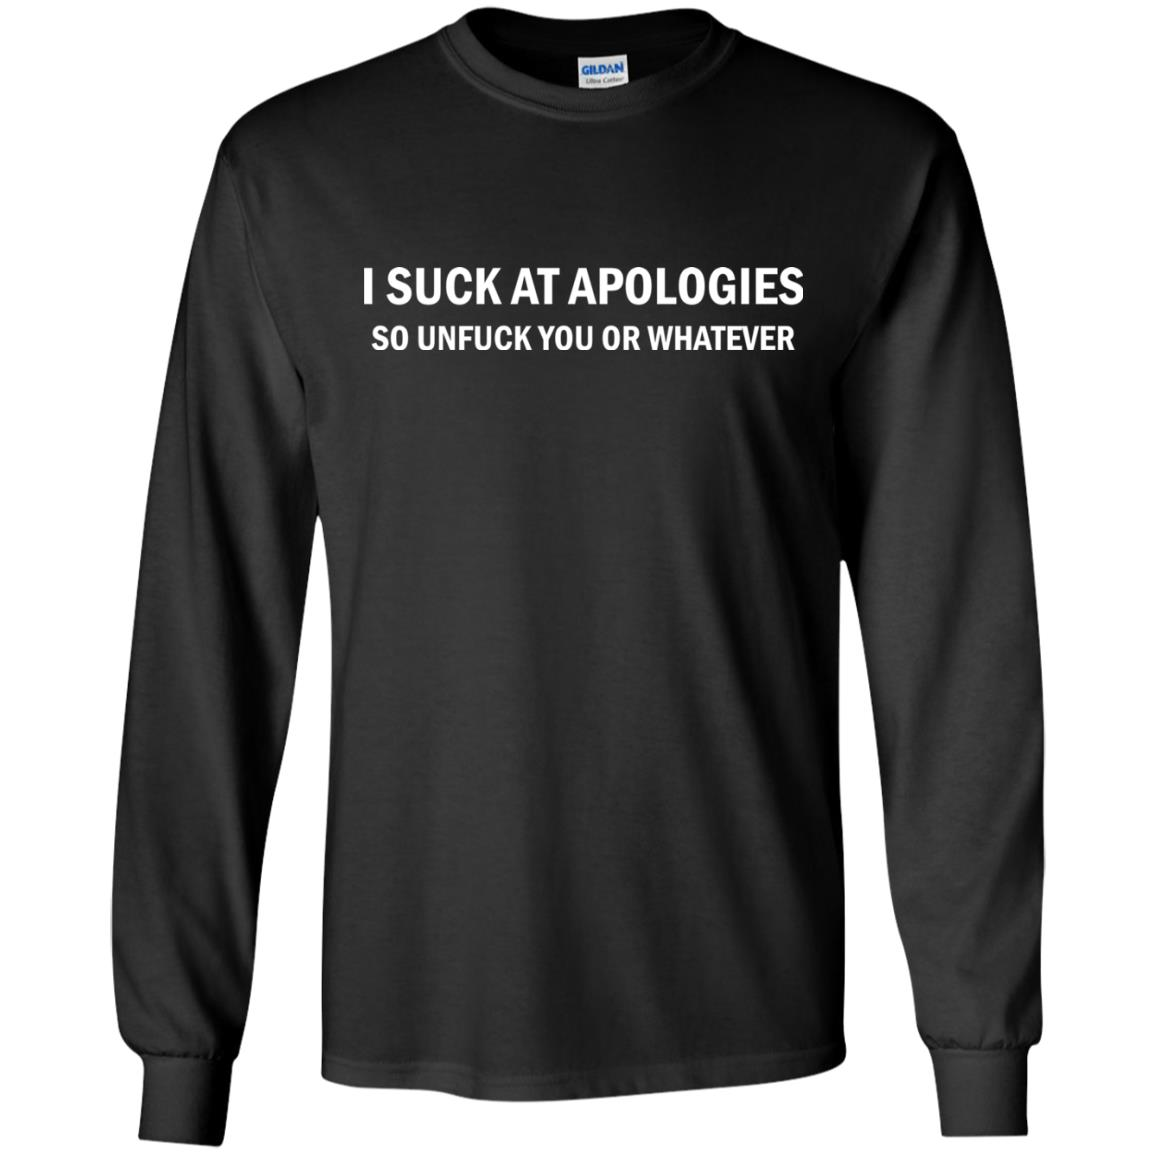 image 1831 - I suck at apologies so unfuck you or whatever shirt